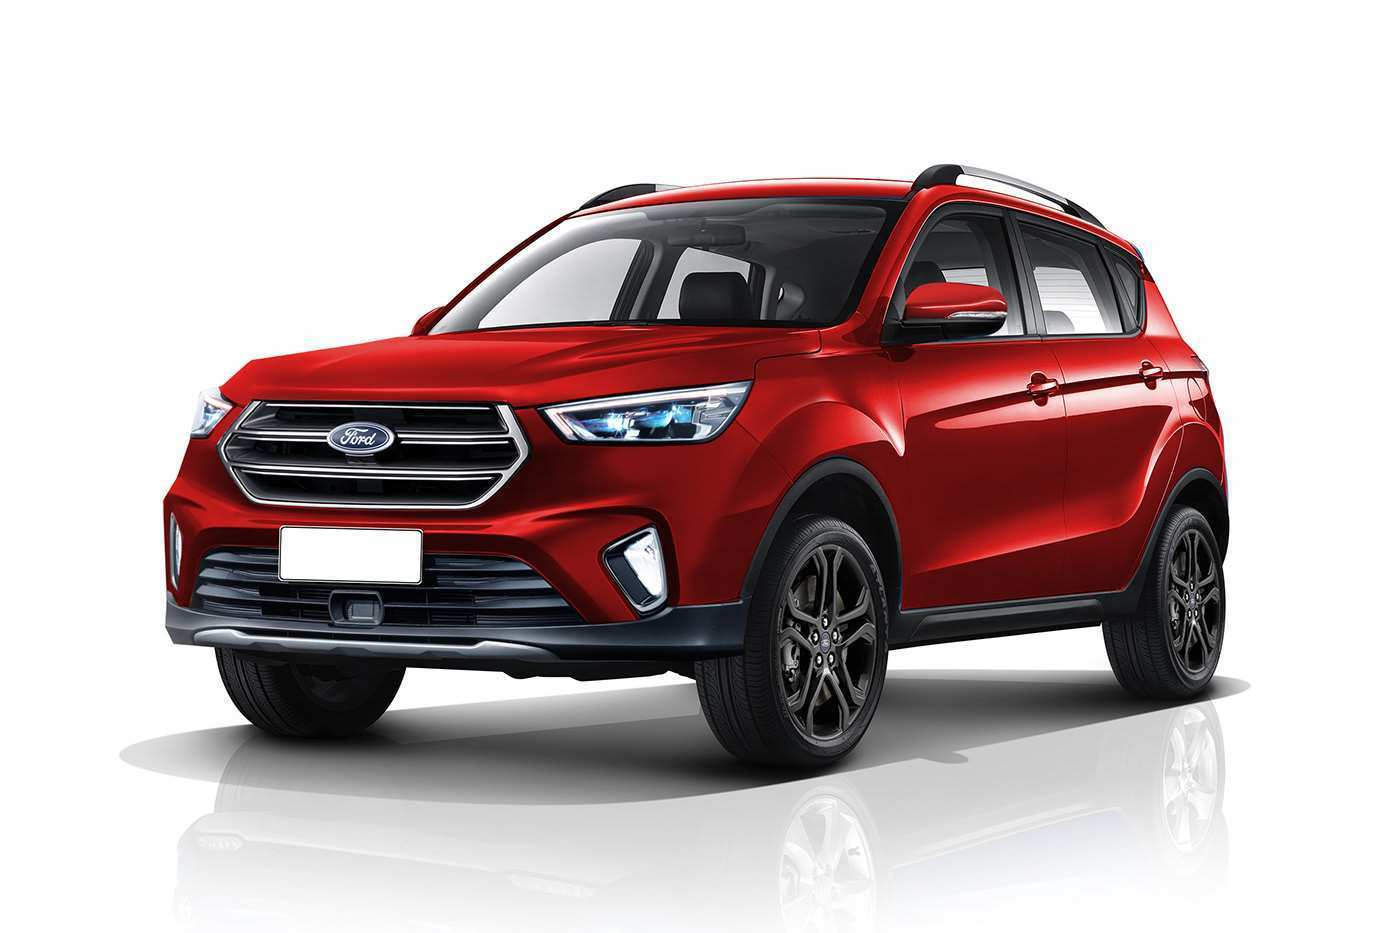 60 Great 2020 Ford Ecosport Spesification for 2020 Ford Ecosport